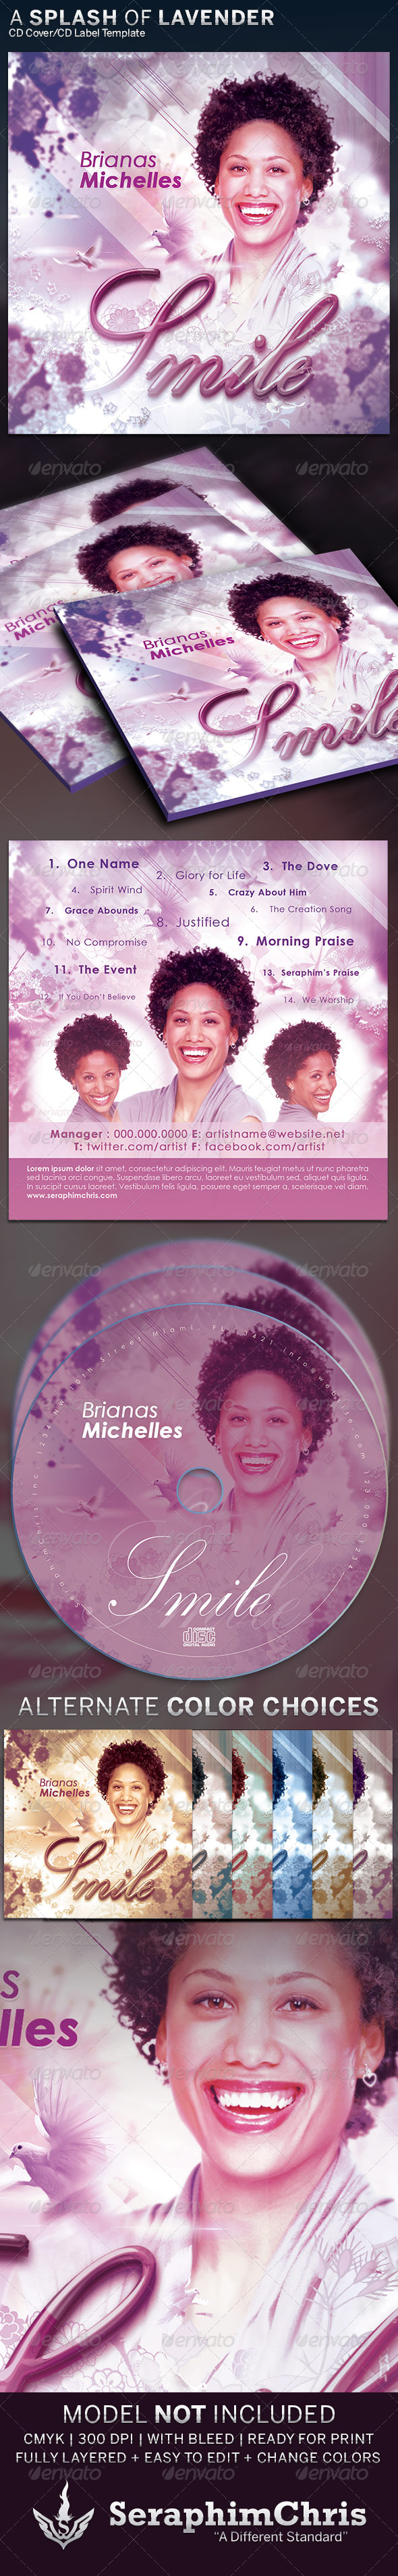 A Splash of Lavender CD Insert and Label - CD & DVD Artwork Print Templates